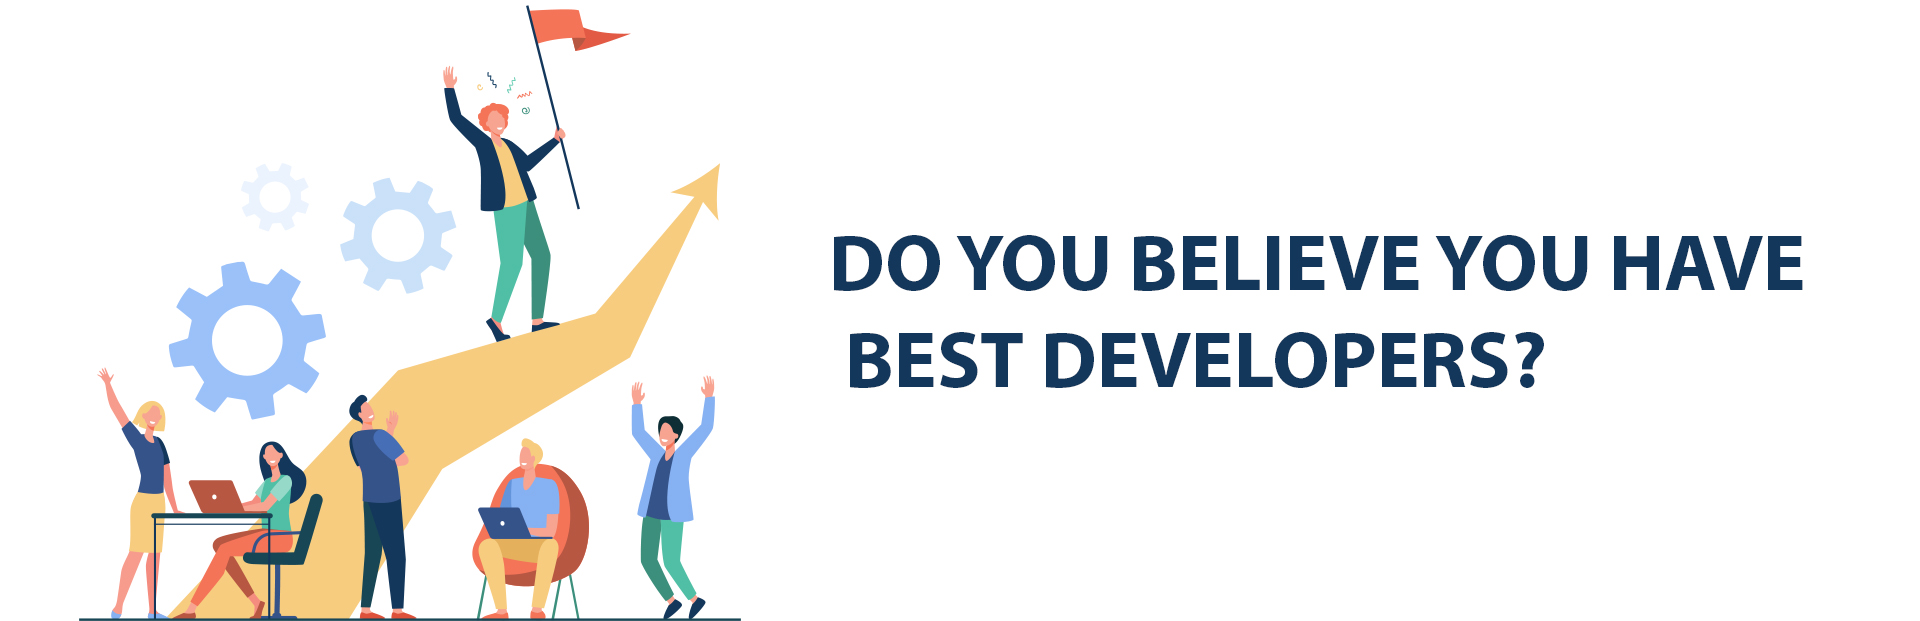 If you believe your developers are the best, you are making a mistake. Learn why?